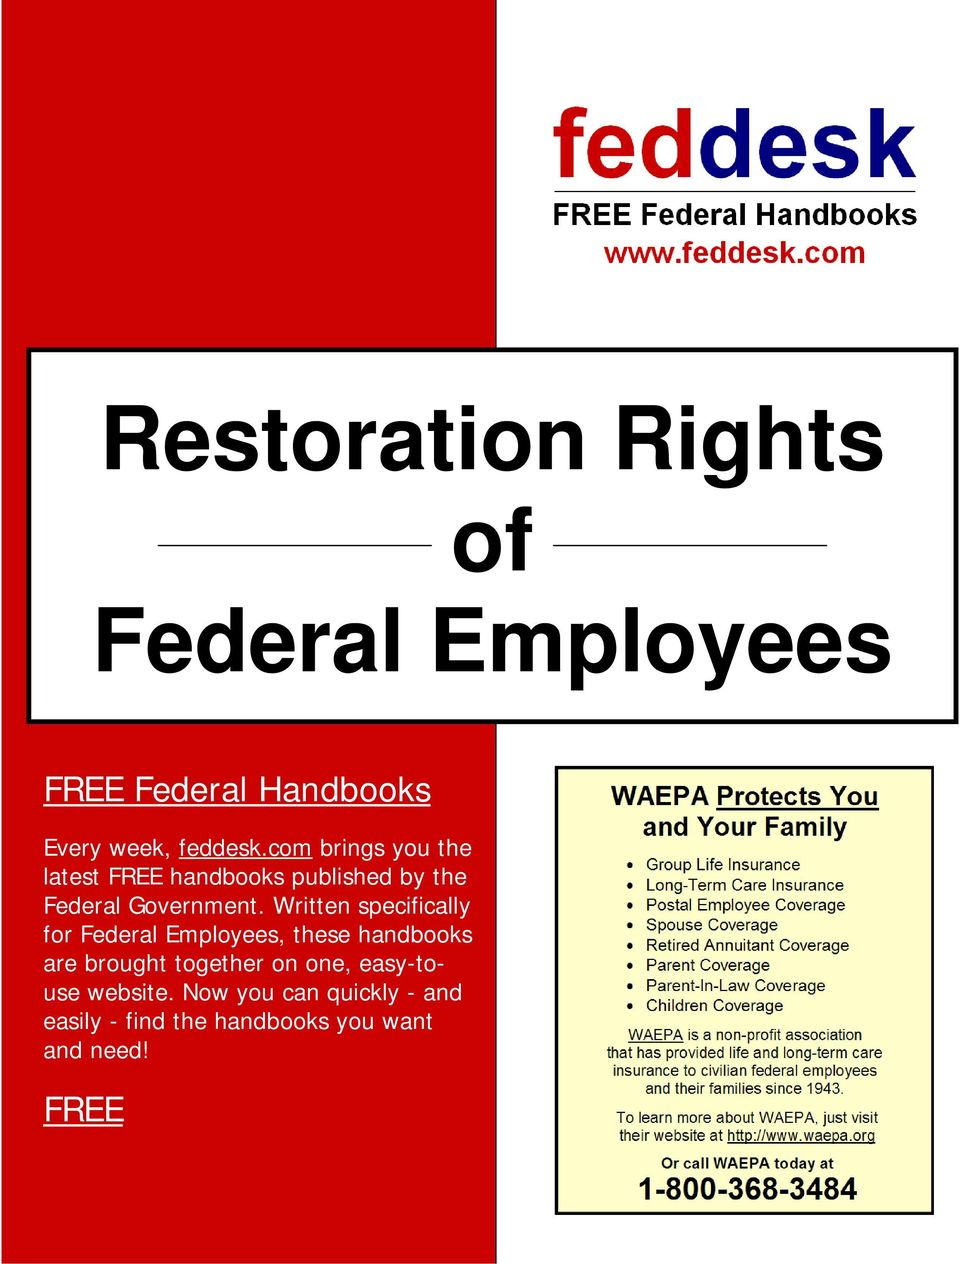 Written specifically for Federal Employees, these handbooks are brought together on